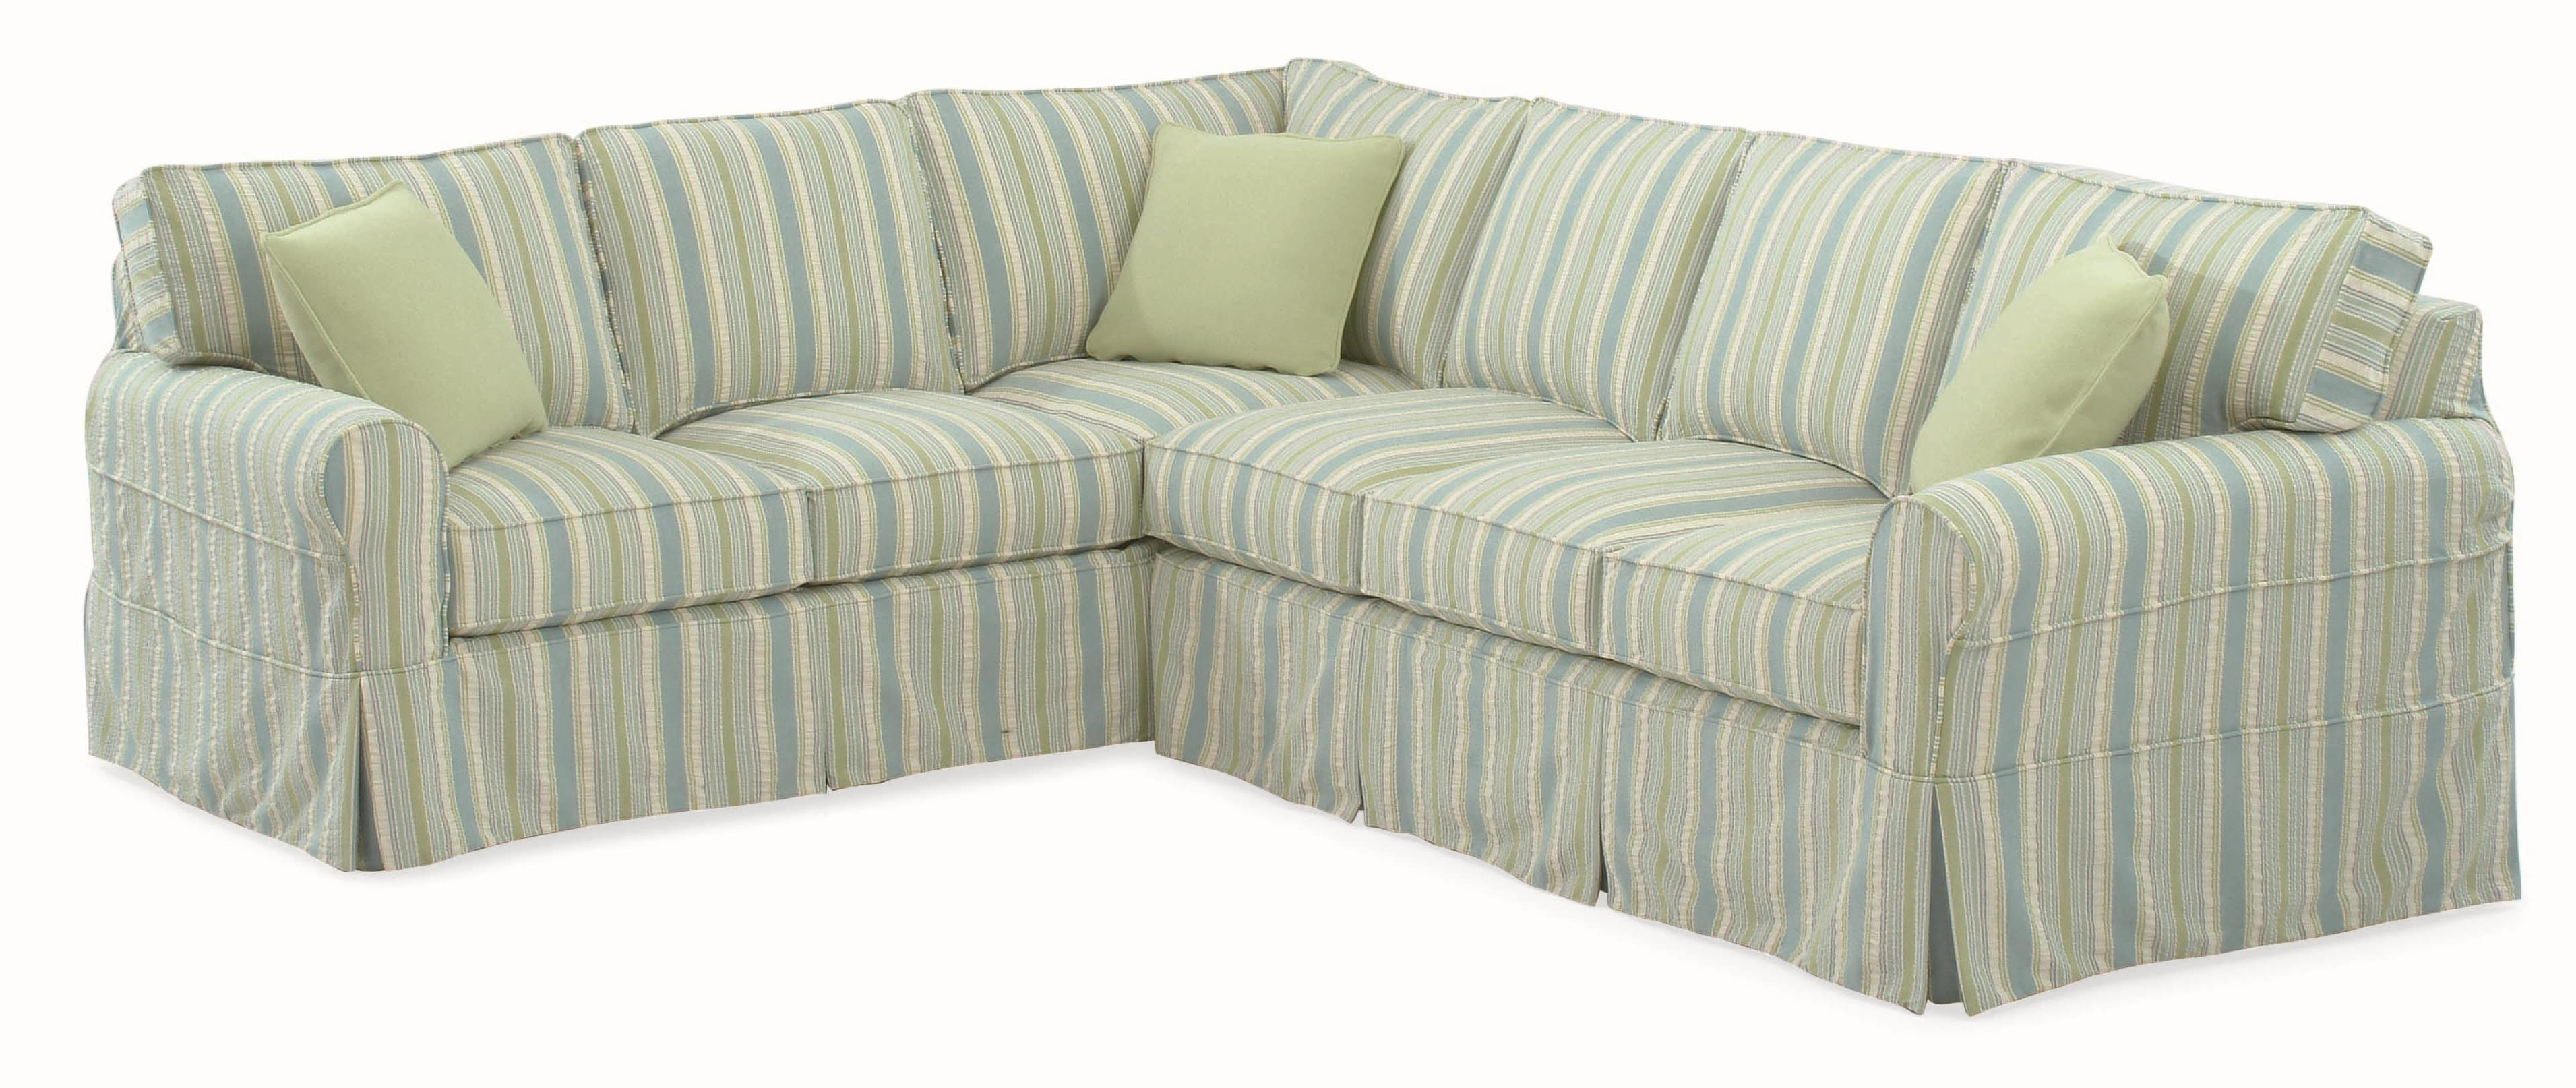 Havertys Sectional Sofas In Most Popular Braxton Culler 728 Casual Sectional Sofa With Rolled Arms And (View 6 of 20)